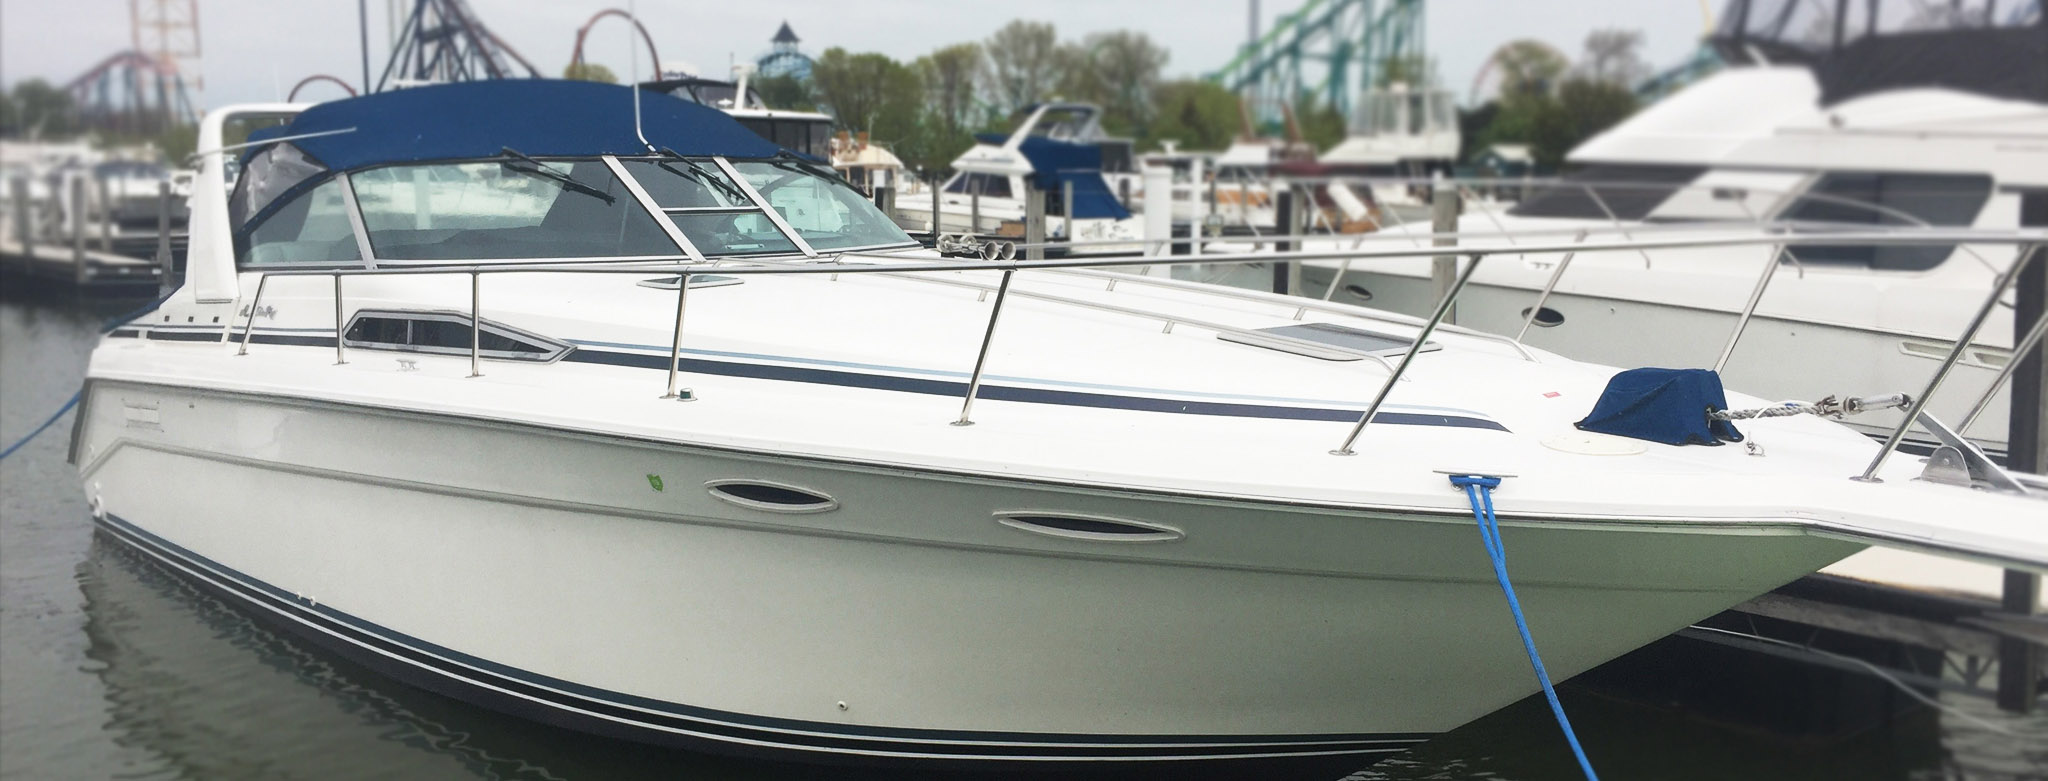 Used Boats Yachts For Sale In Ohio Great Lakes Boats